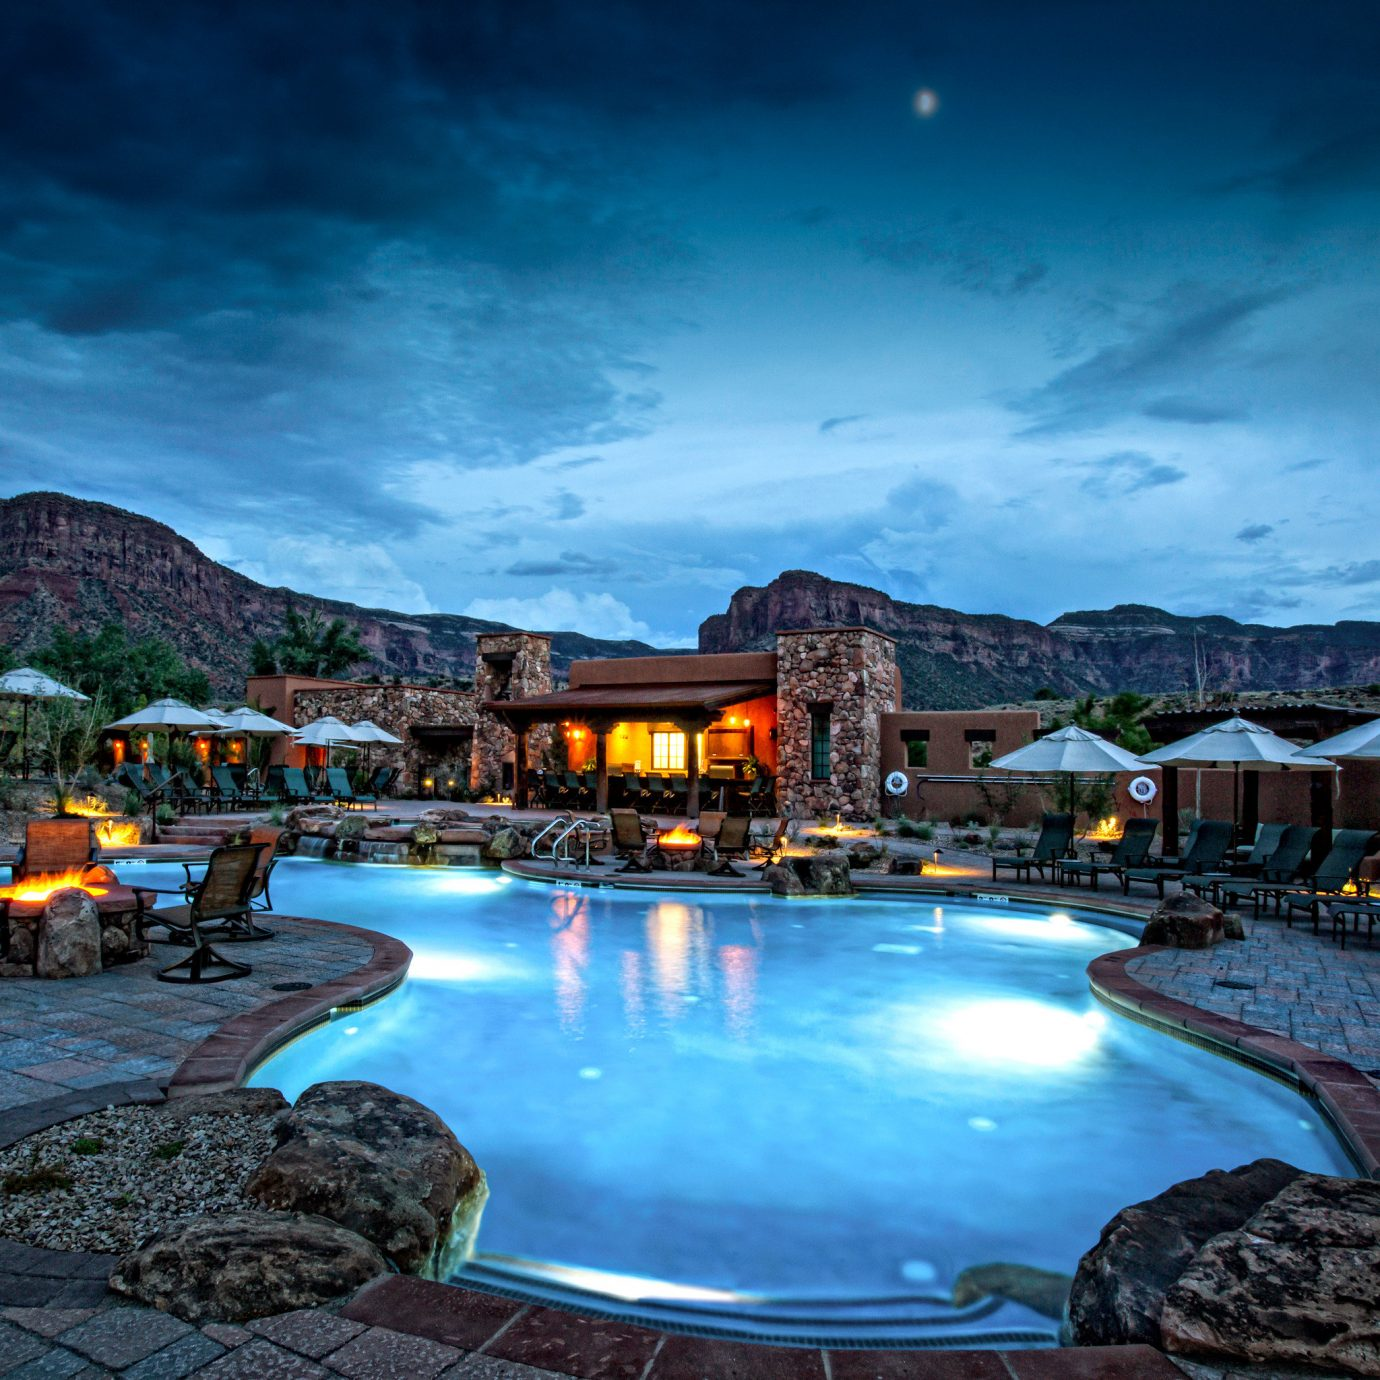 Exterior Fireplace Grounds Mountains Outdoors Pool Rustic Scenic views sky water swimming pool night Resort Harbor evening dusk screenshot